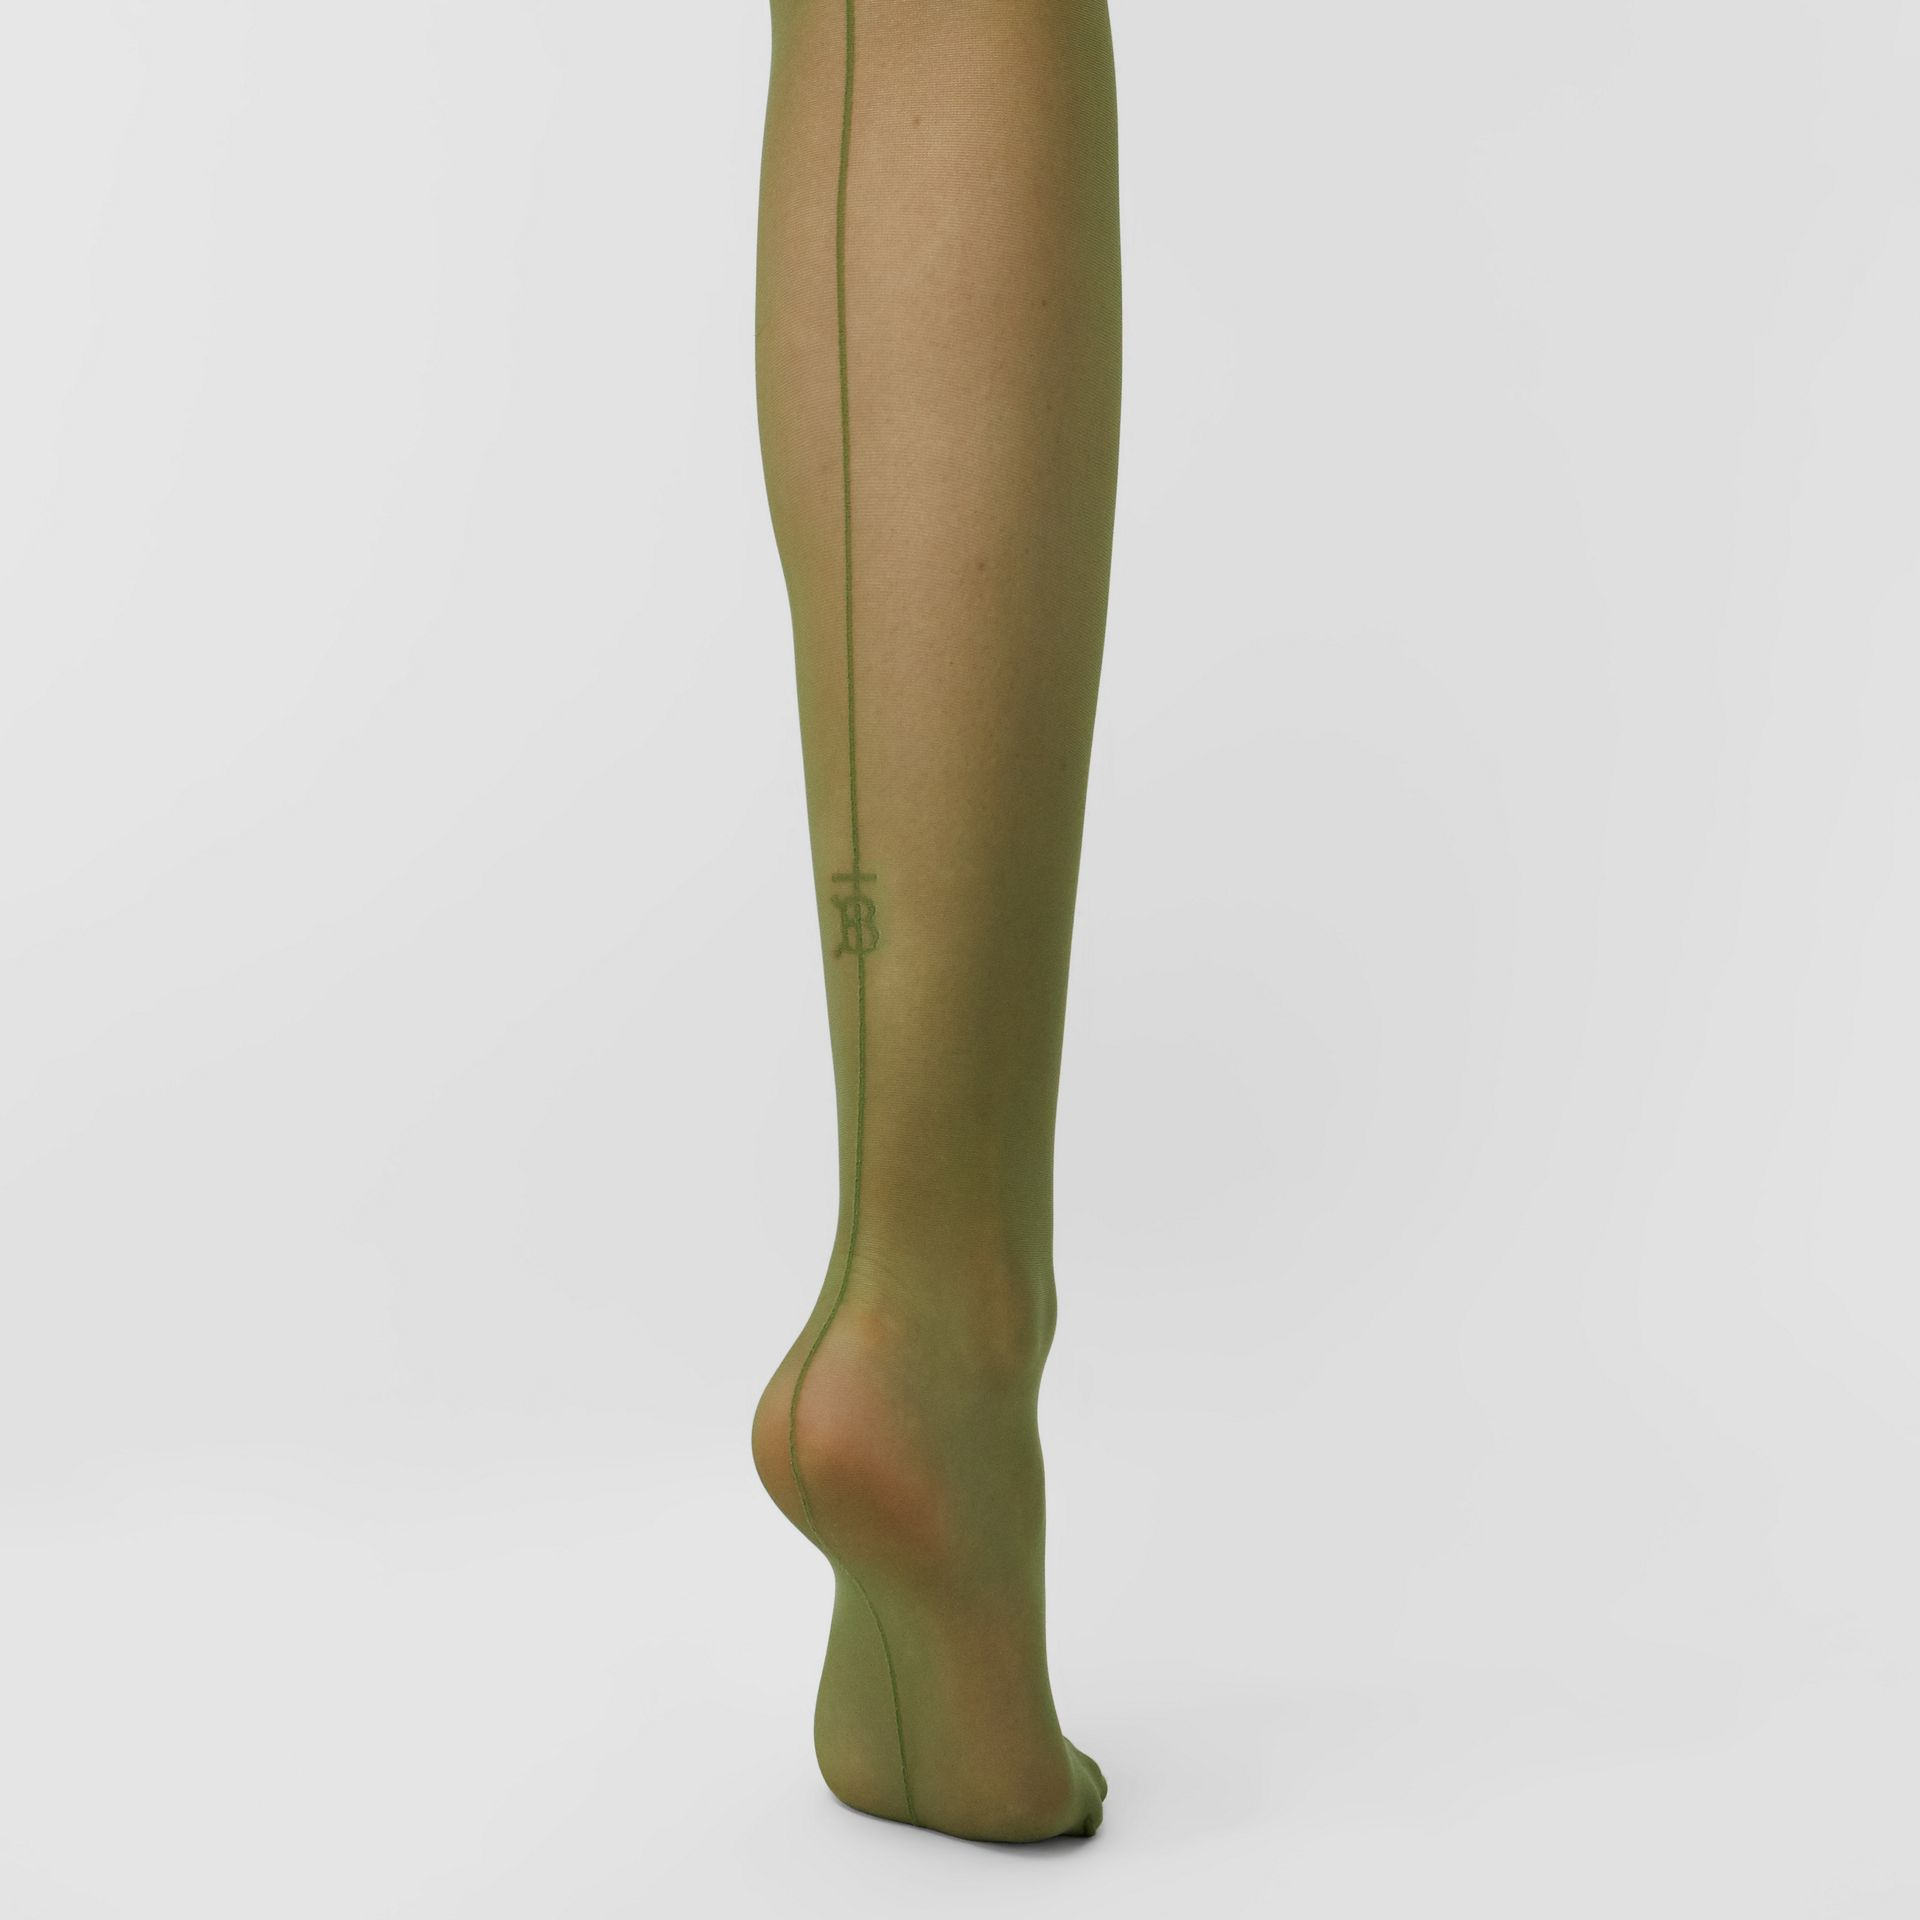 Monogram Motif Seamed Tights in Cedar Green - Women | Burberry - gallery image 0